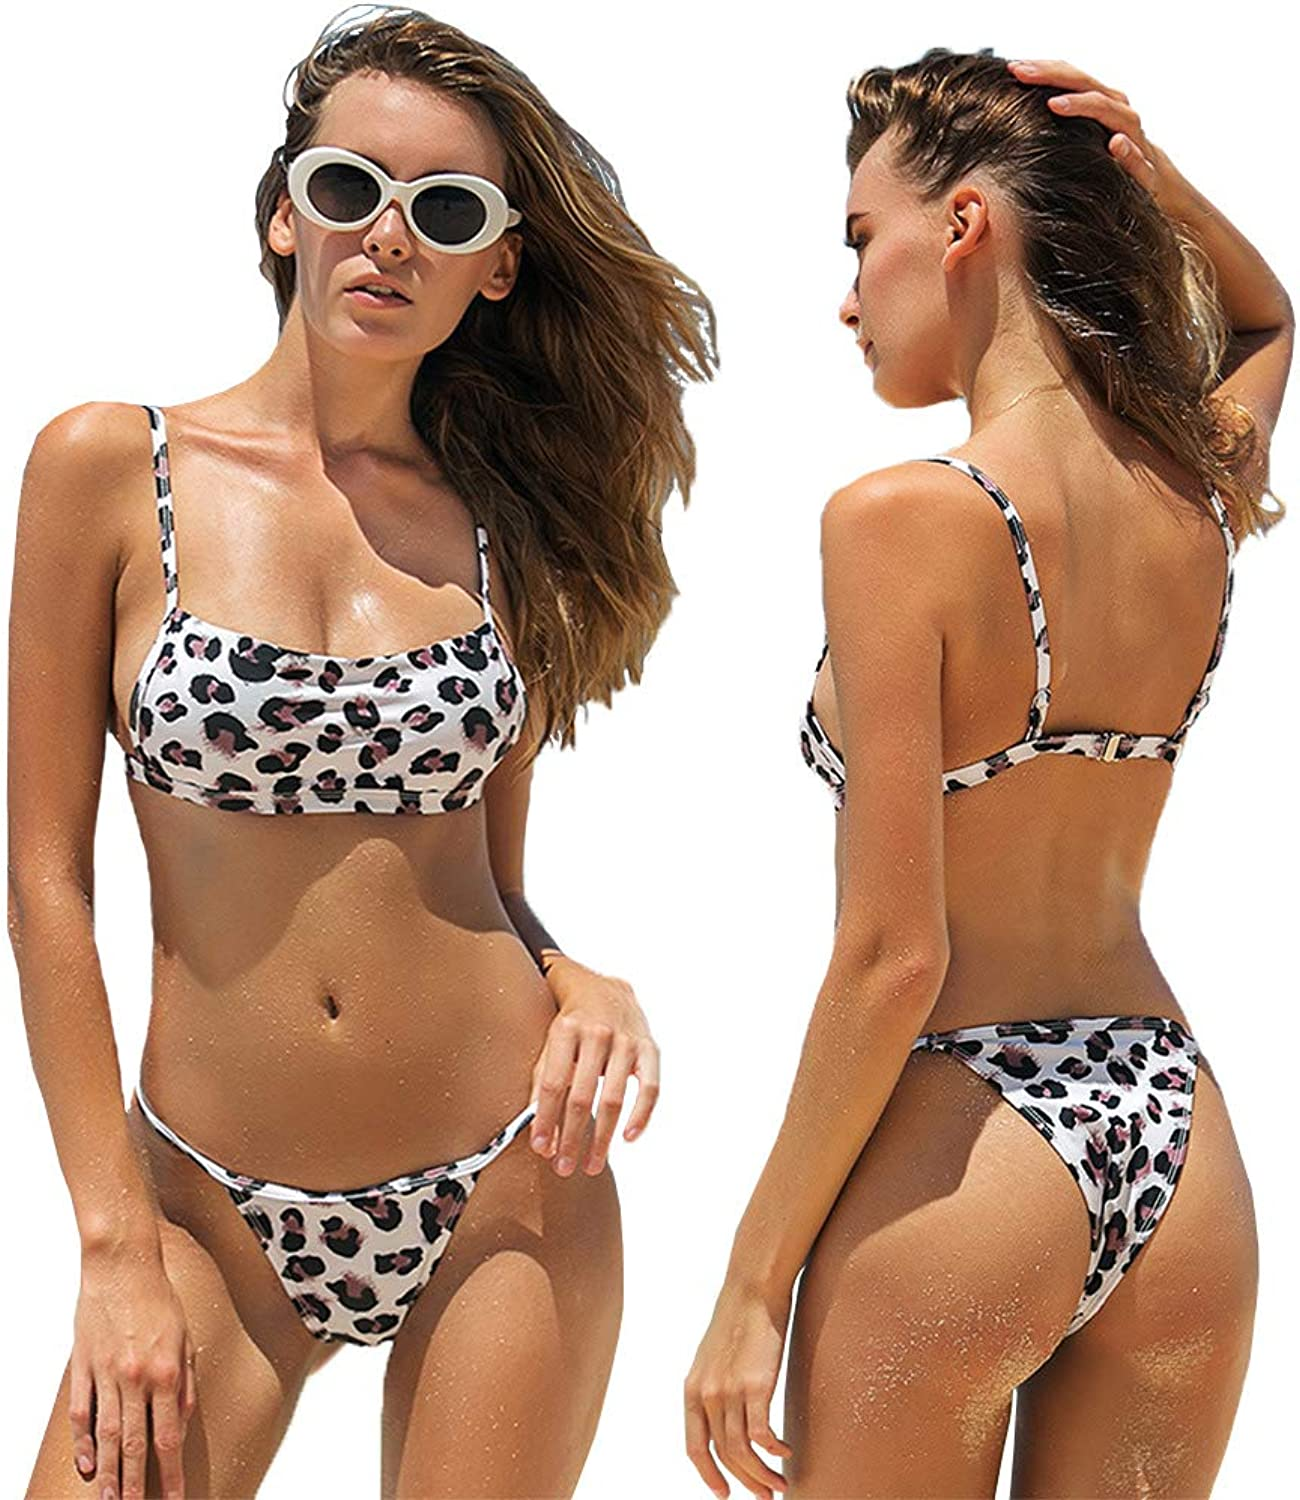 Women Swimwear Set PushUp Padded Bra Beach Bikini Set Swimsuit Sexy Swimwear